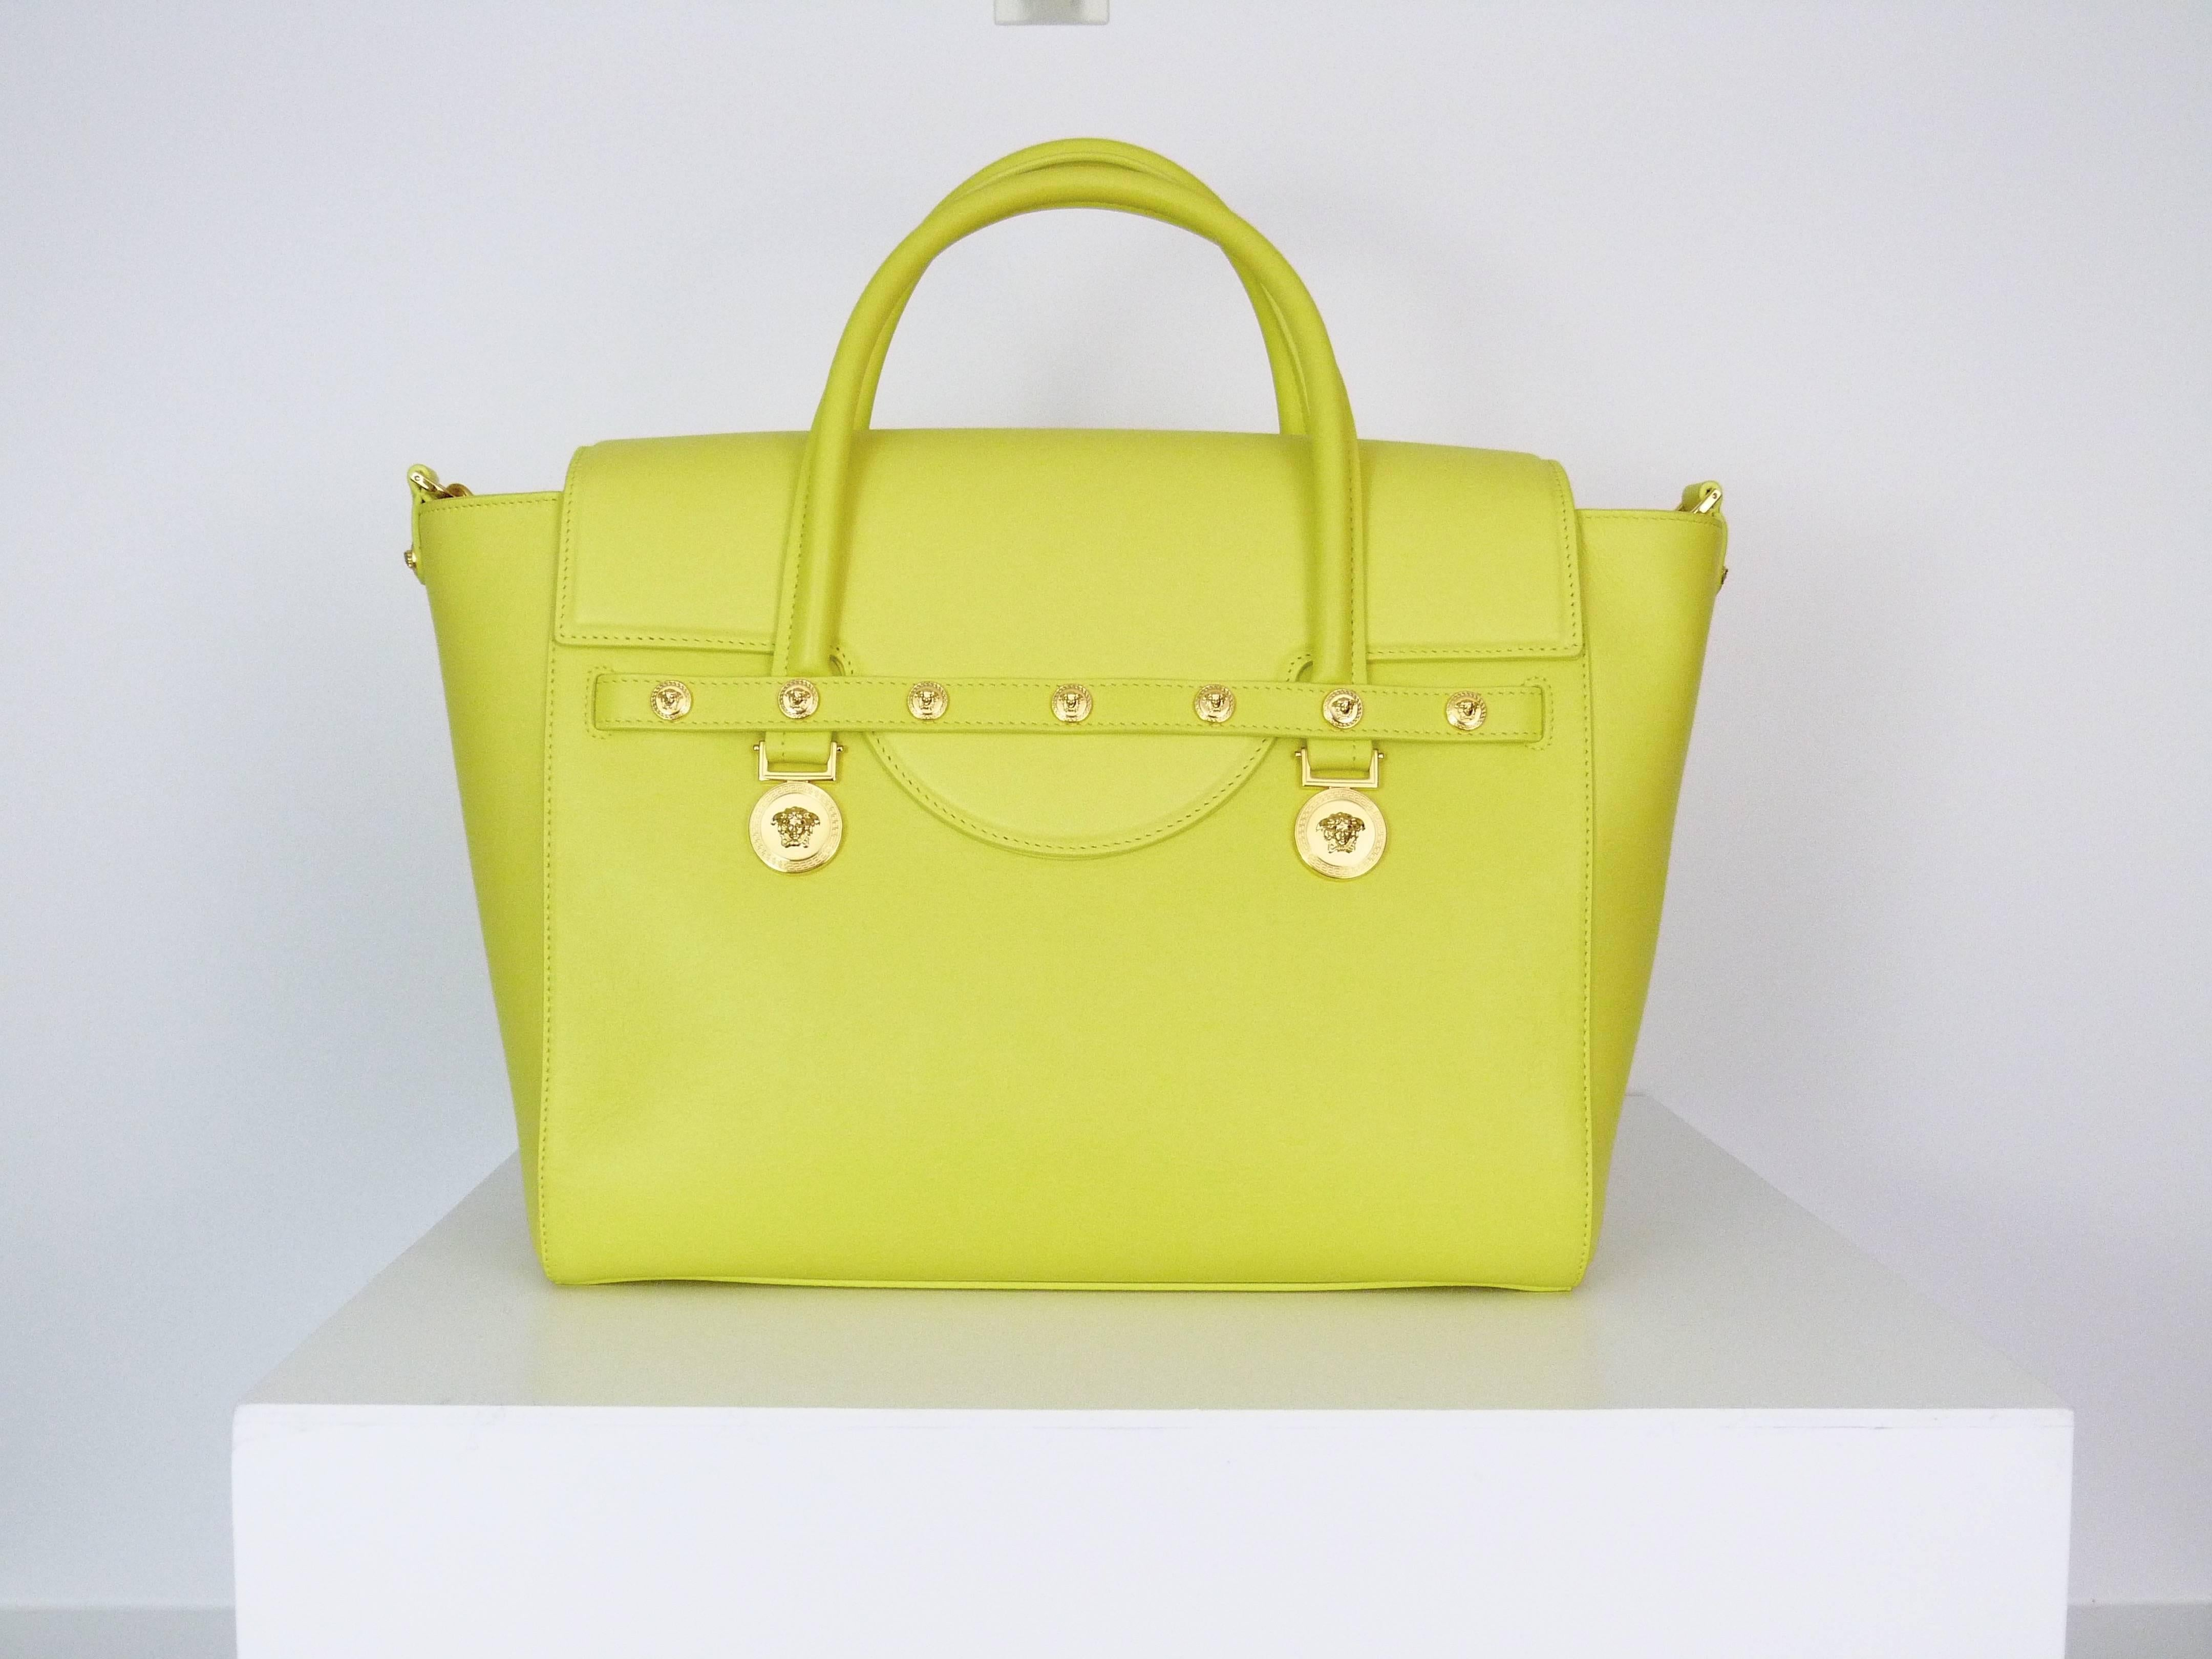 Versace Signature yellow large leather bag, 2015 at 1stdibs bc736c2c09